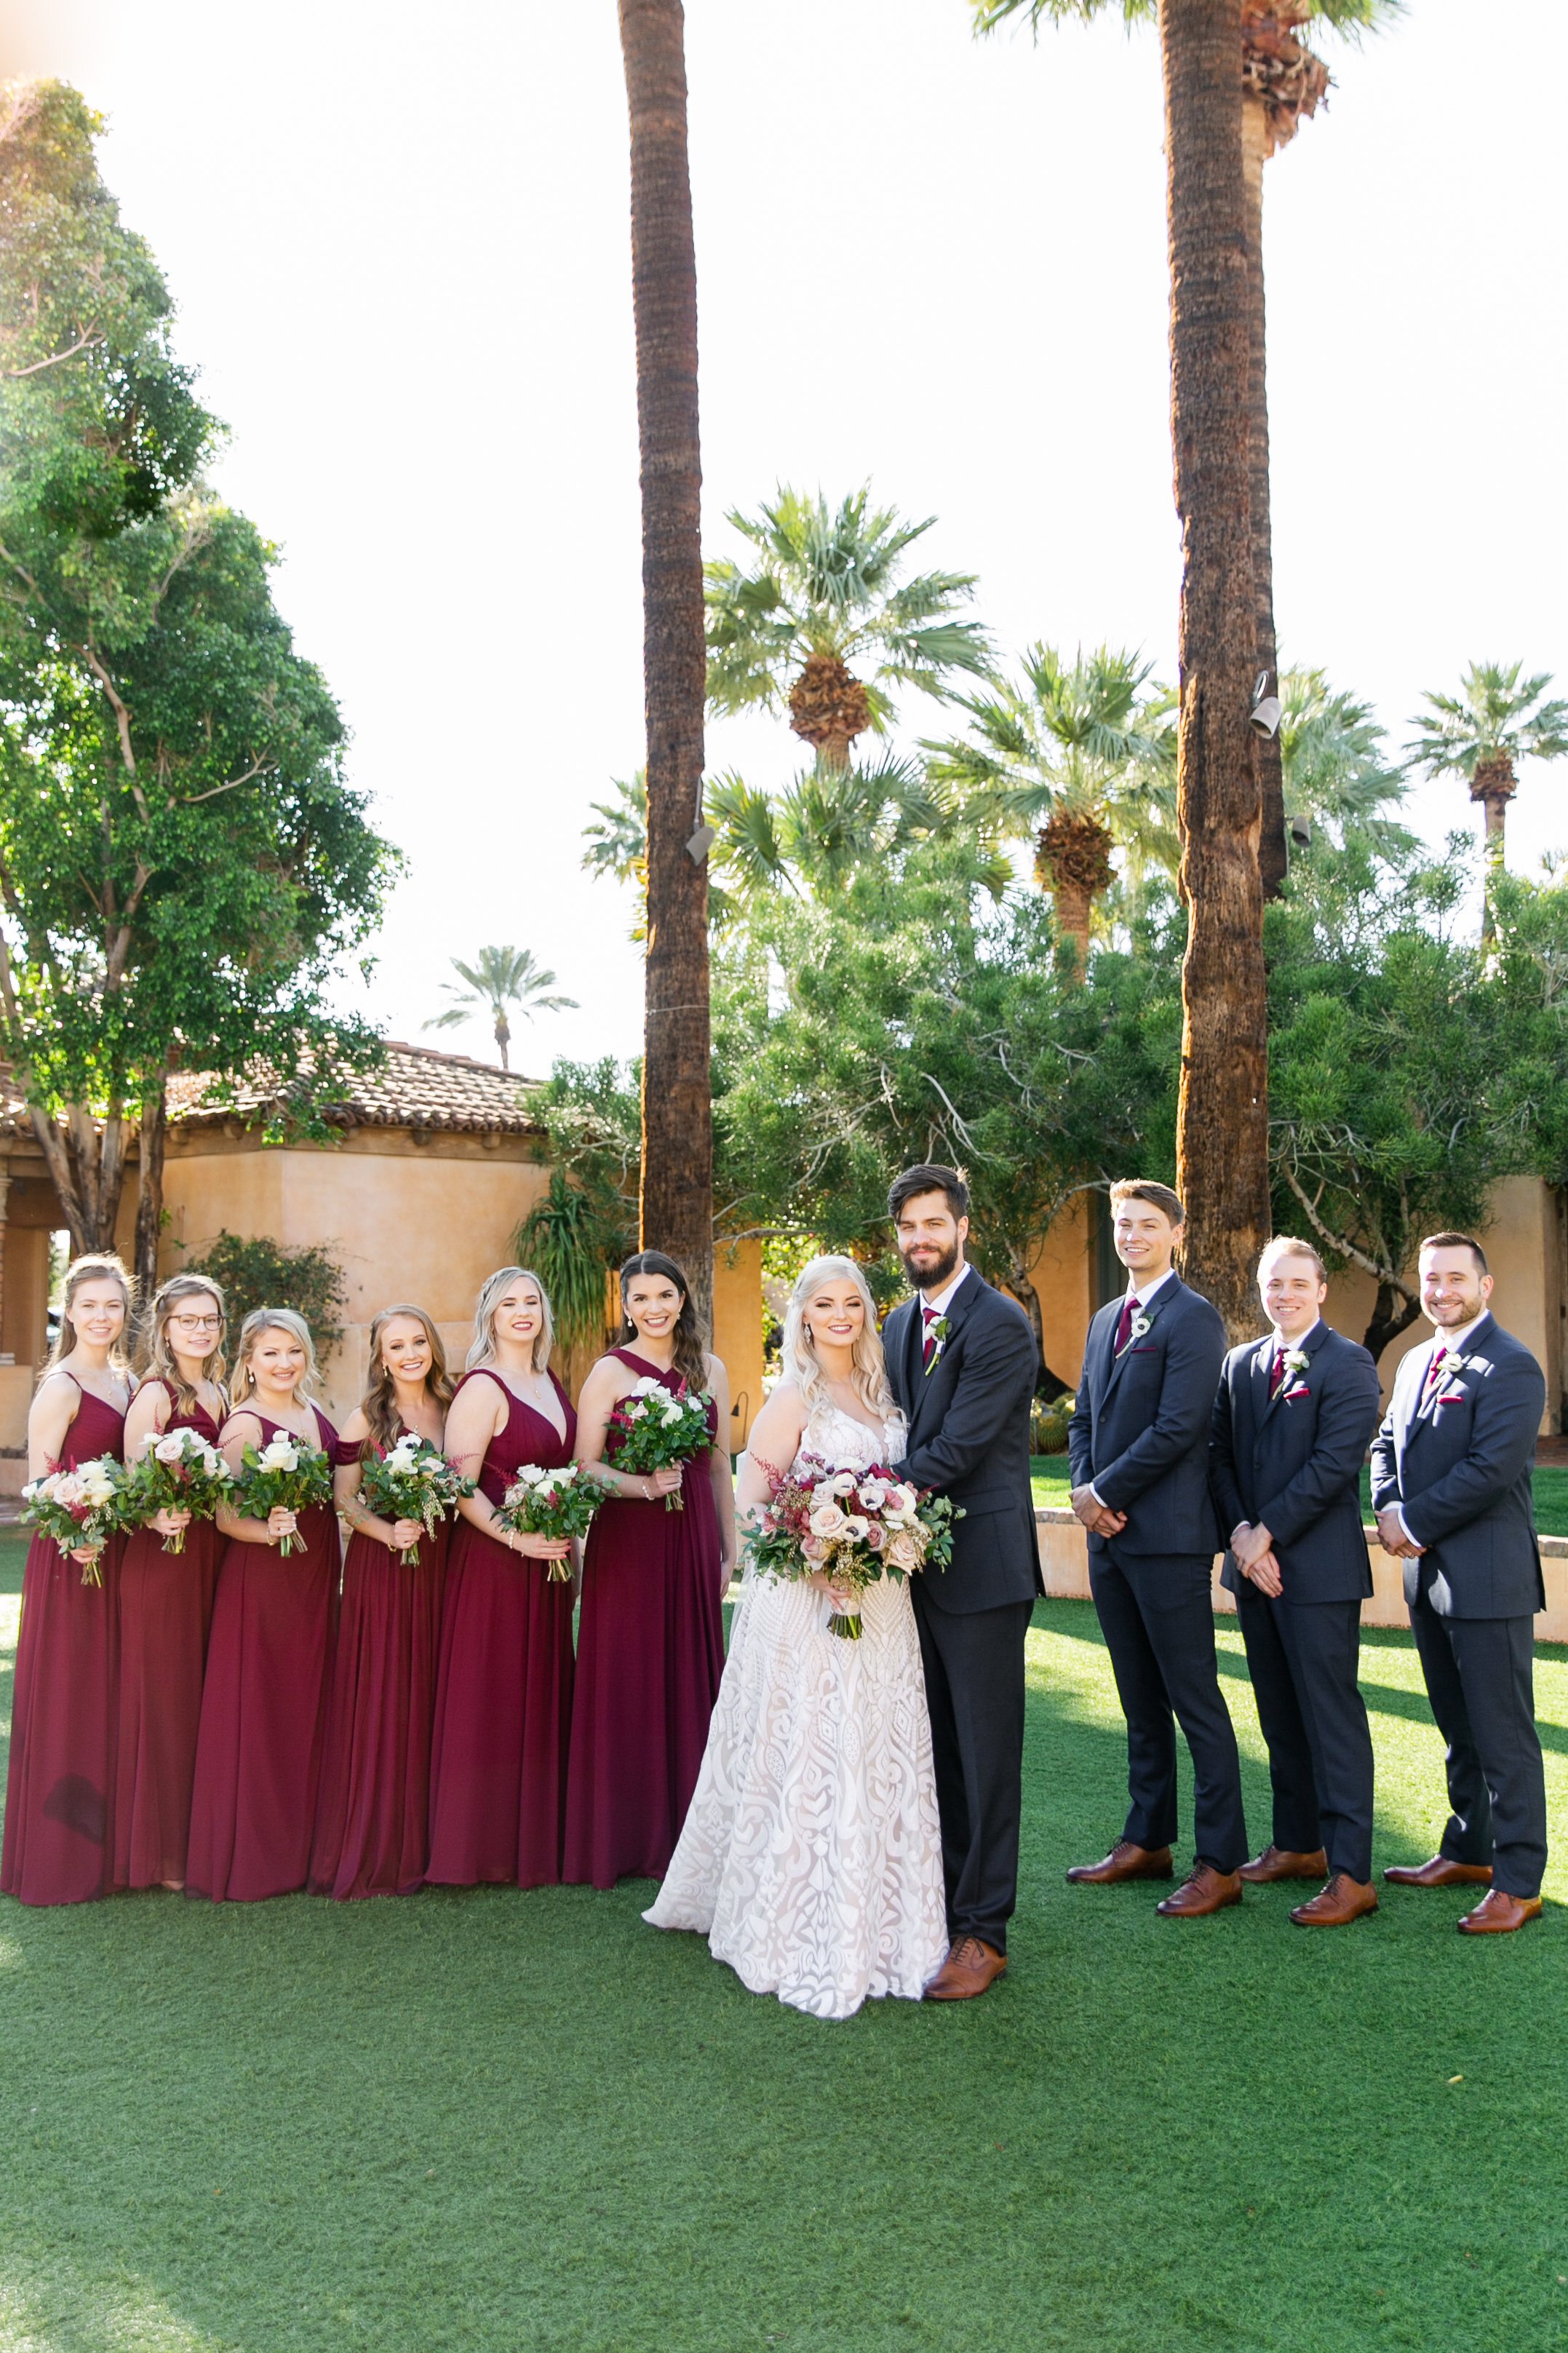 Karlie Colleen Photography - The Royal Palms Wedding - Some Like It Classic - Alex & Sam-260